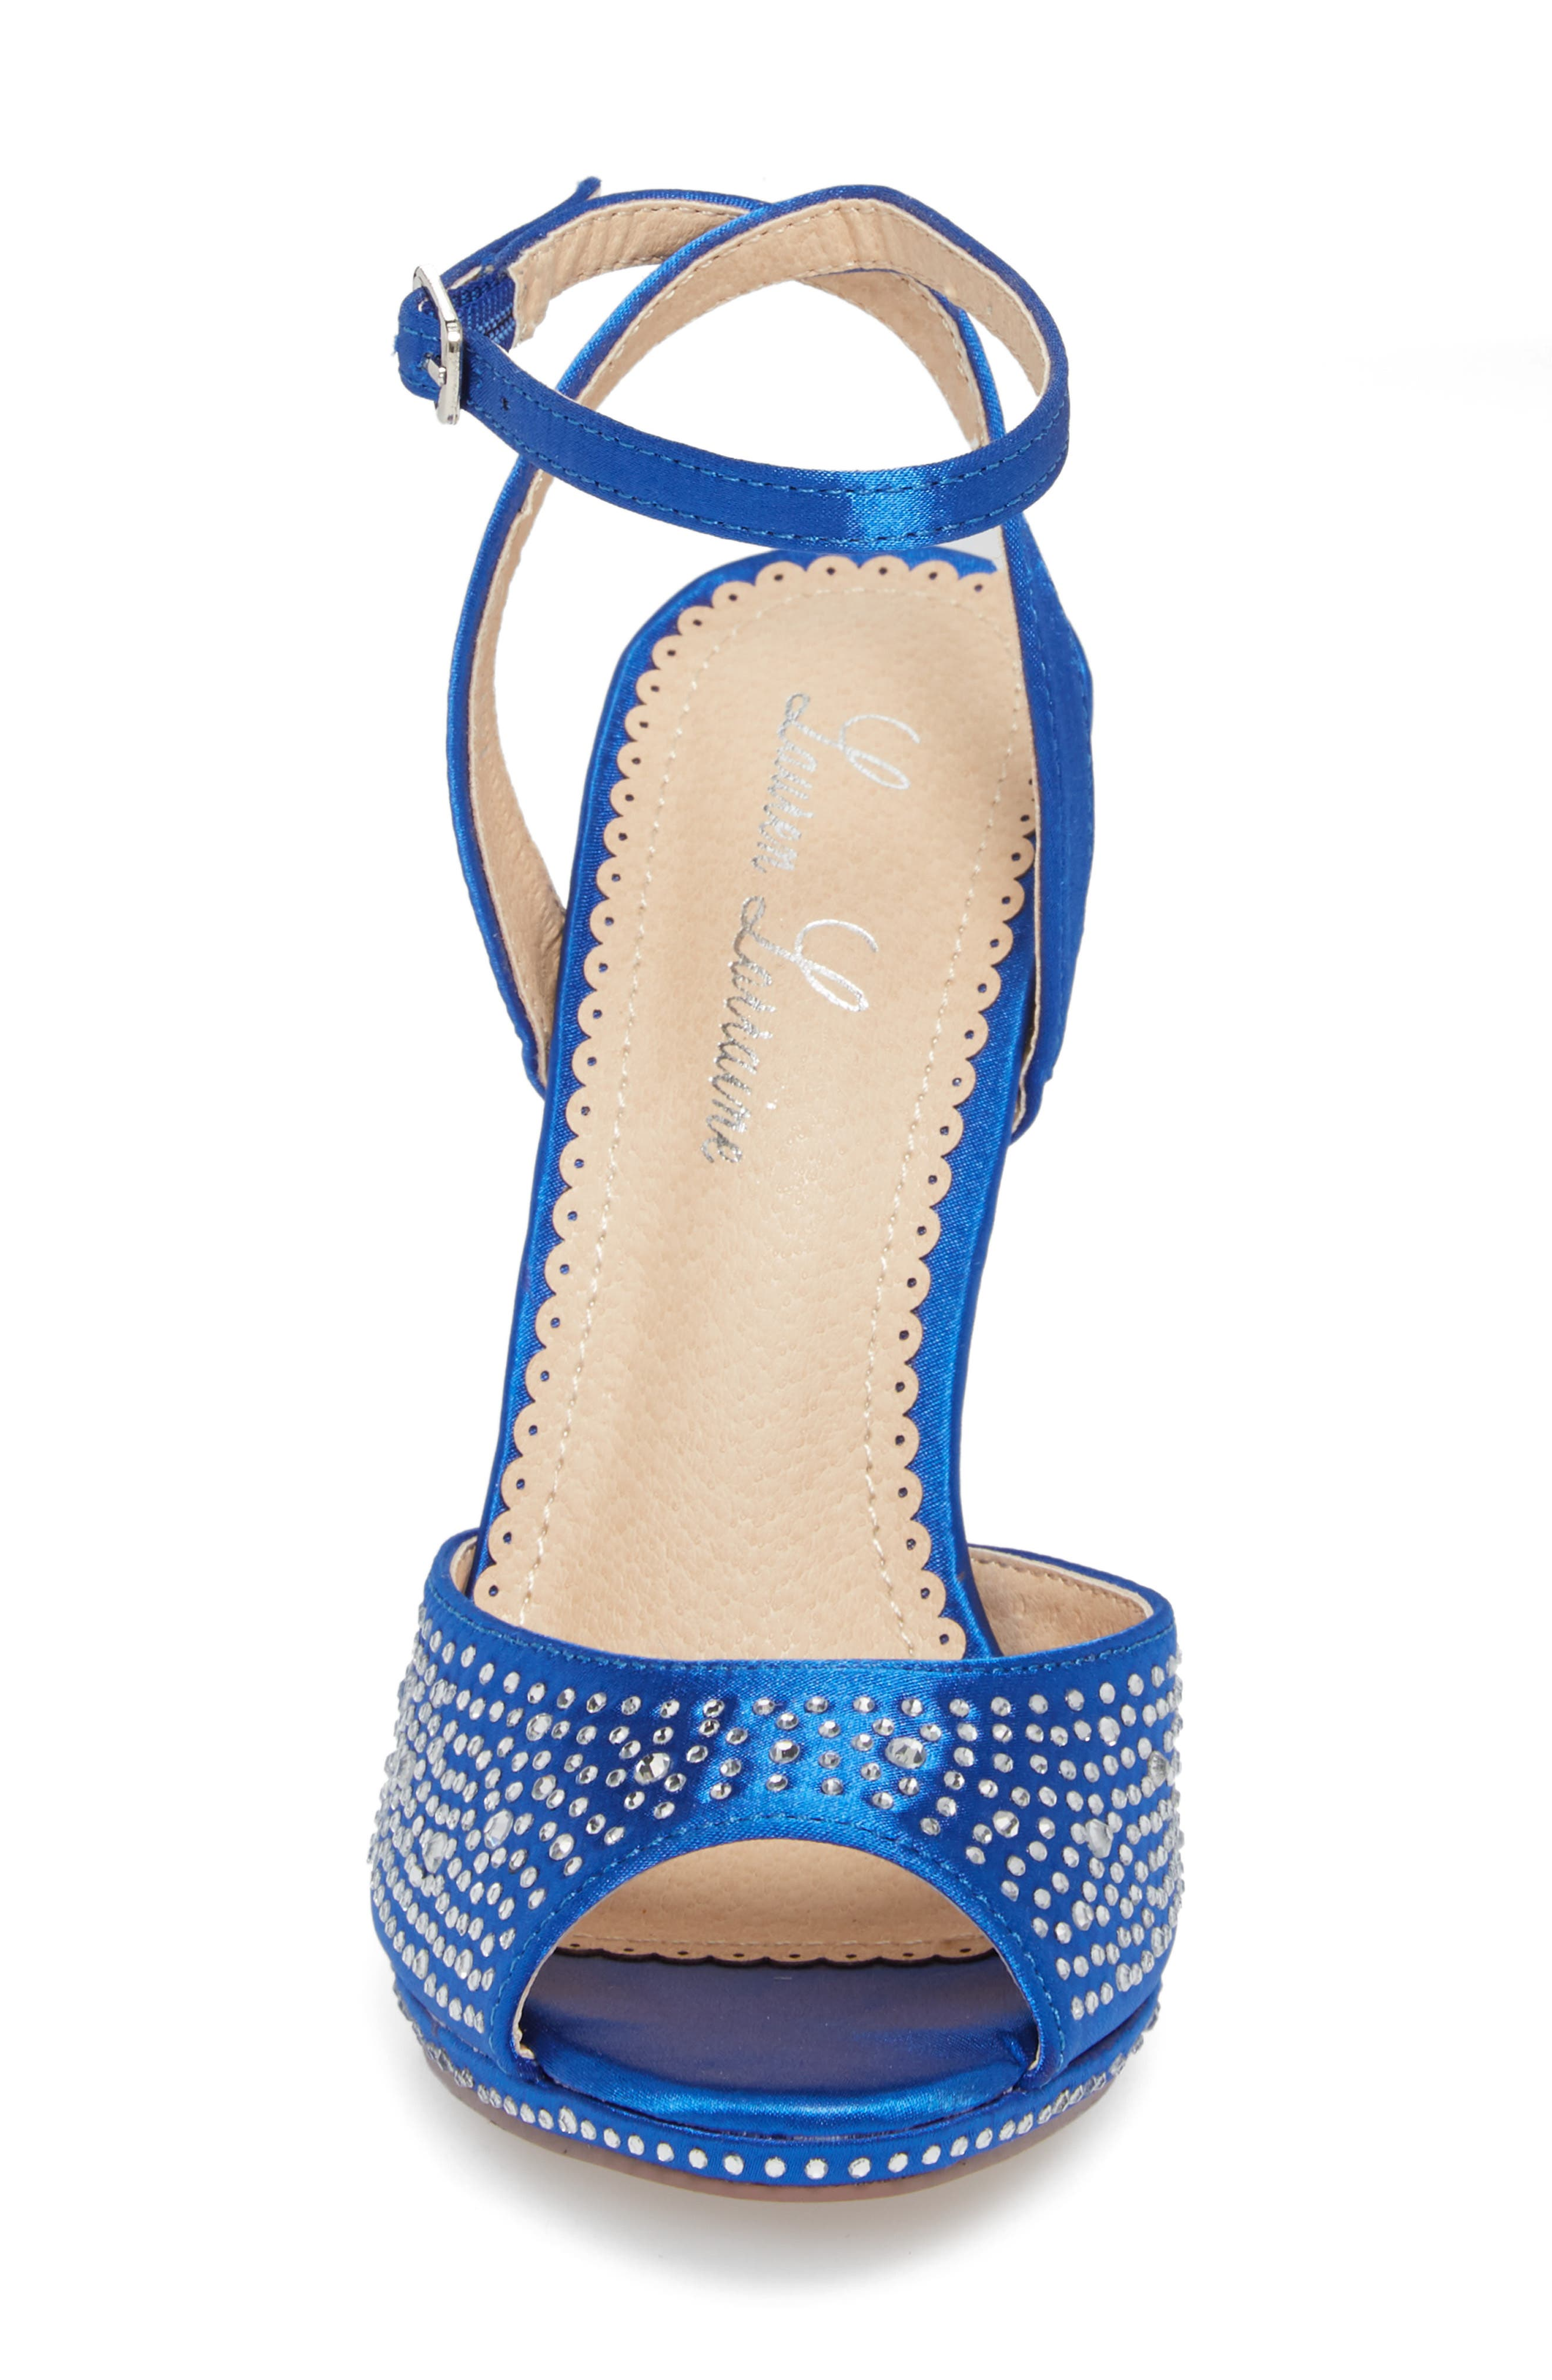 Tavi Sandal,                             Alternate thumbnail 4, color,                             Royal Blue Fabric